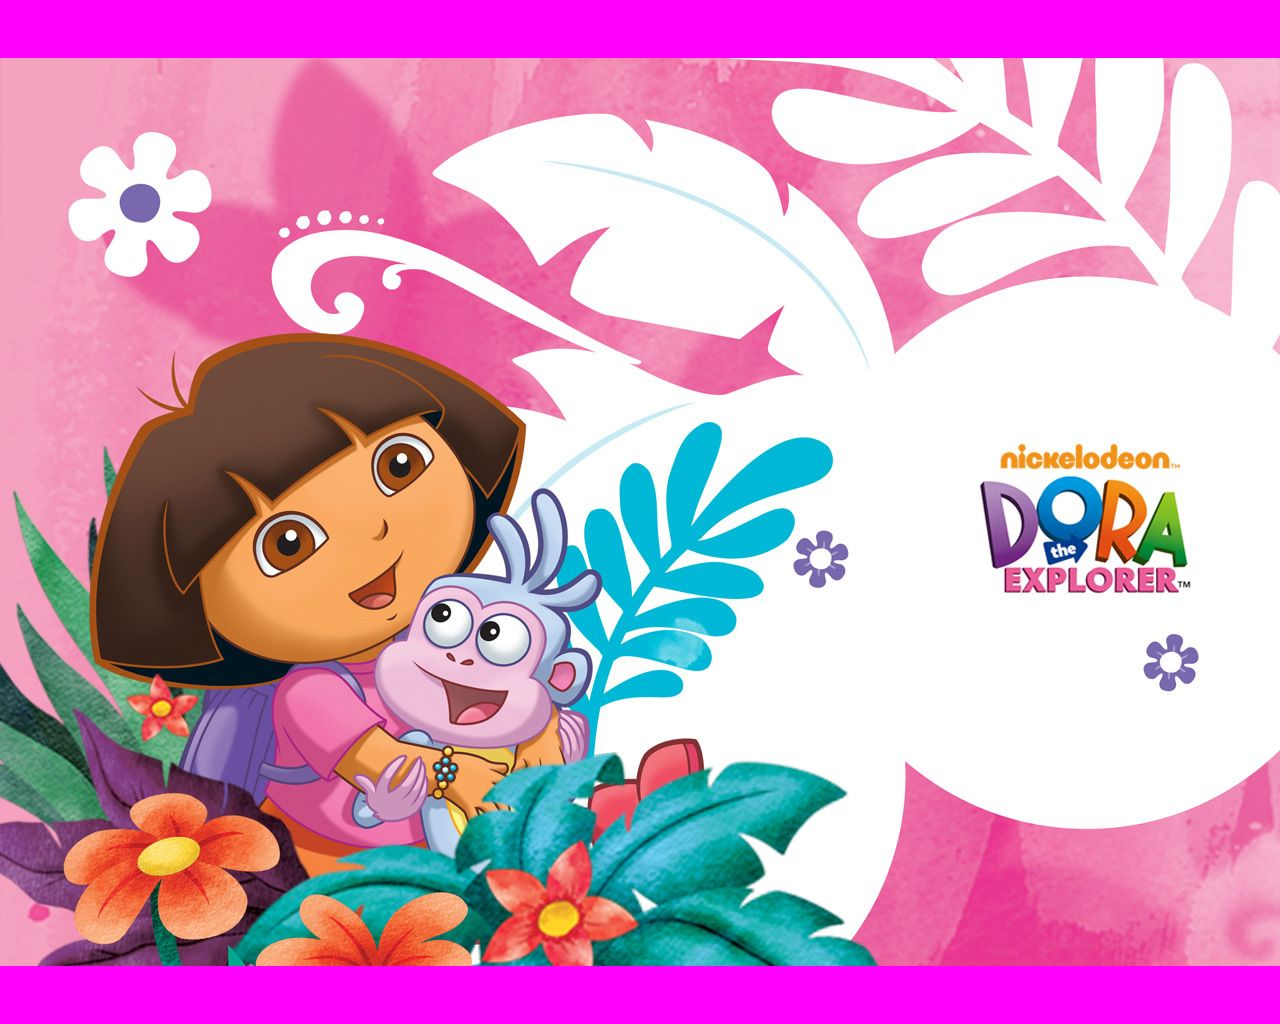 Dora wallpapers djiwallpaper dora wallpapers images wallpaper and cartoon voltagebd Image collections